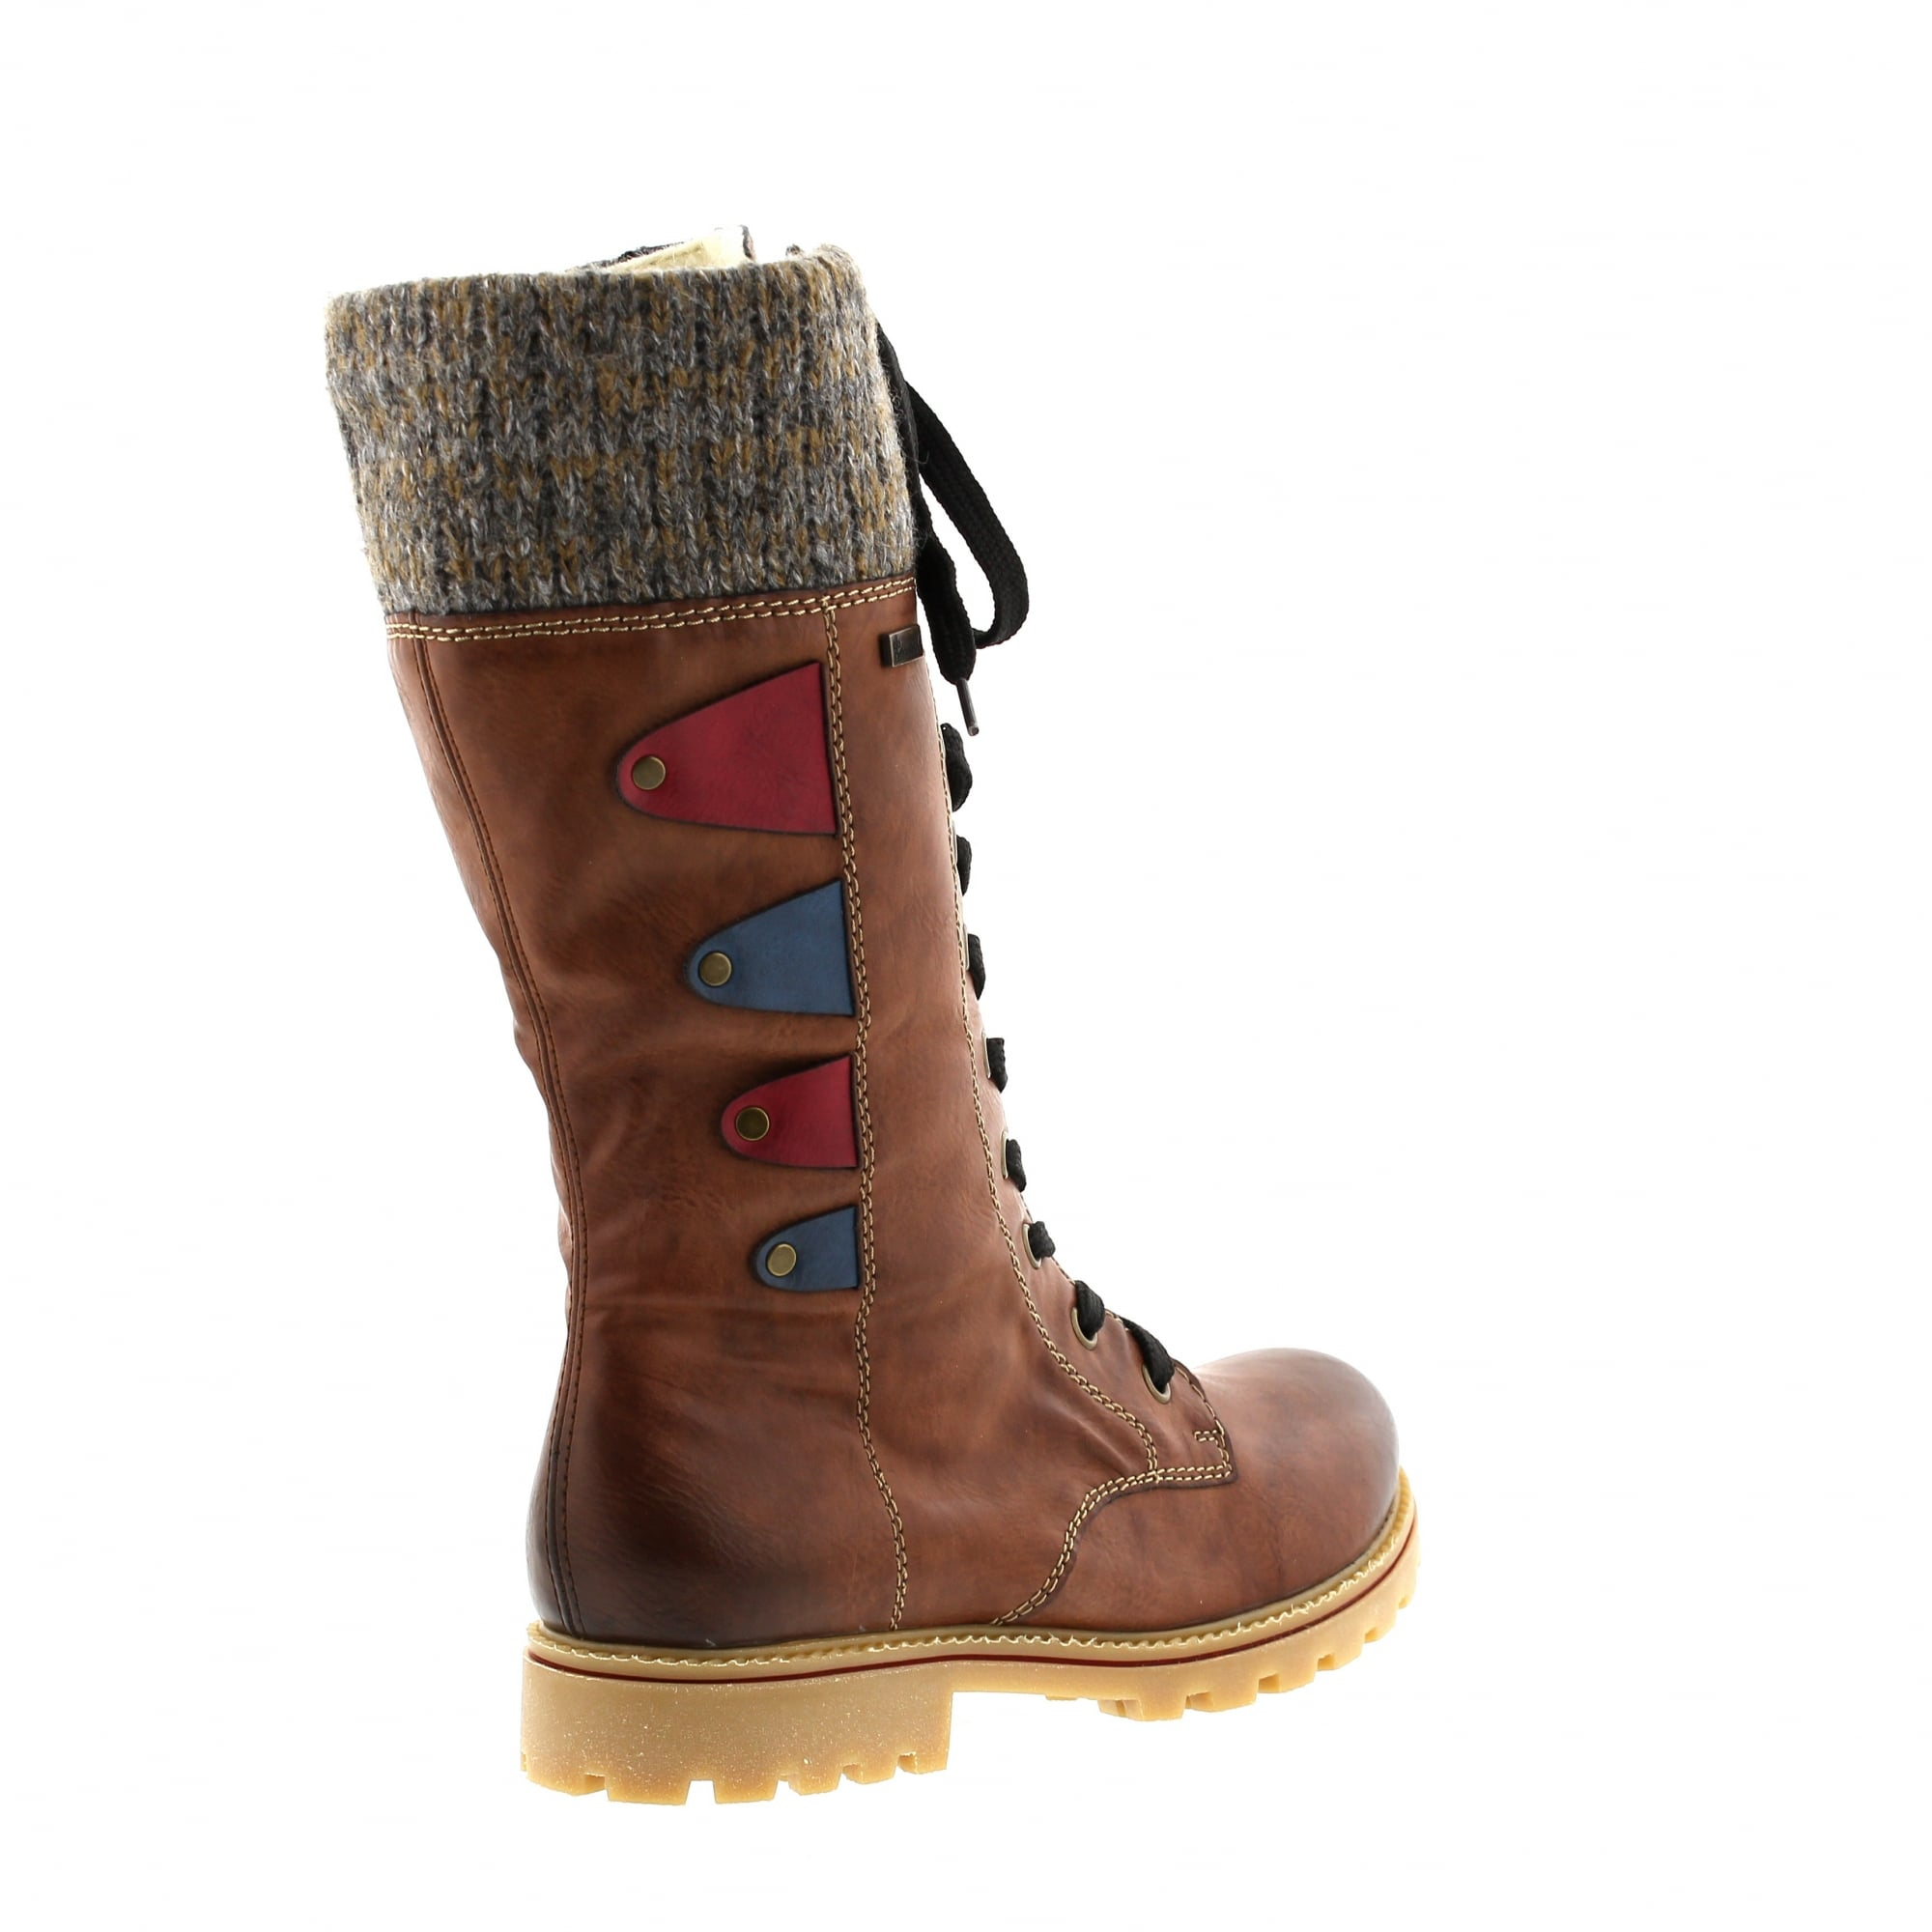 Rieker Z1443-24 Brown/Grey Womens Warm Lined Mid Calf Boots   Rogerson Shoes